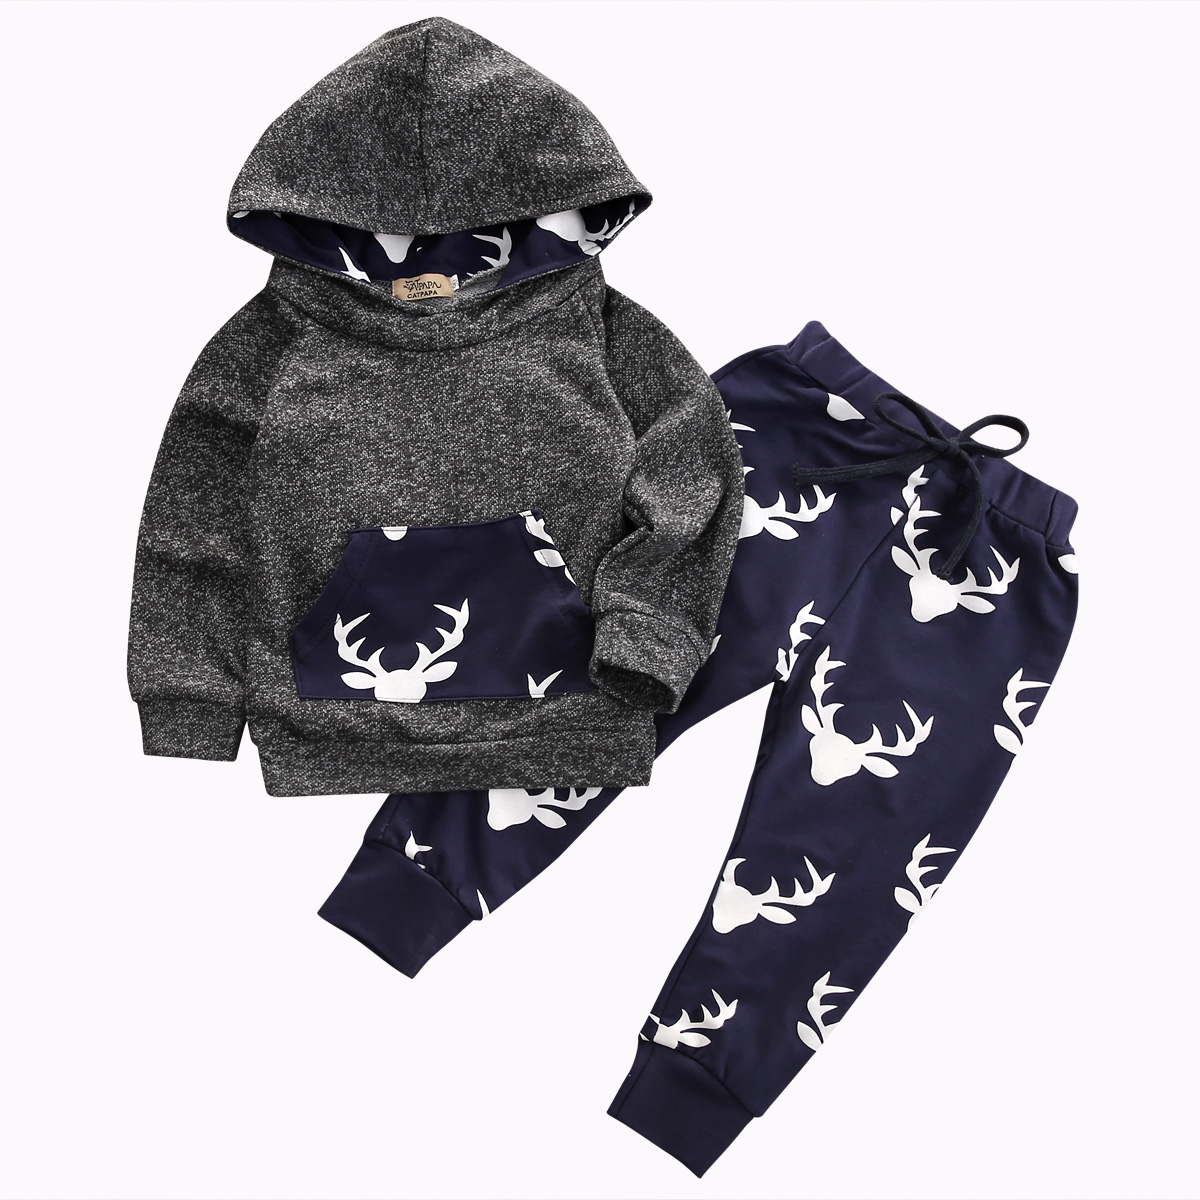 0-24M Newborn Baby Boys Girls Clothes Deer Hooded Top Pant 2pcs Infant Bebek Kids Clothing Set 2016 new casual baby girl clothes 2pcs autumn clothing set floral hooded top pant outfits newborn bebek giyim 0 24m